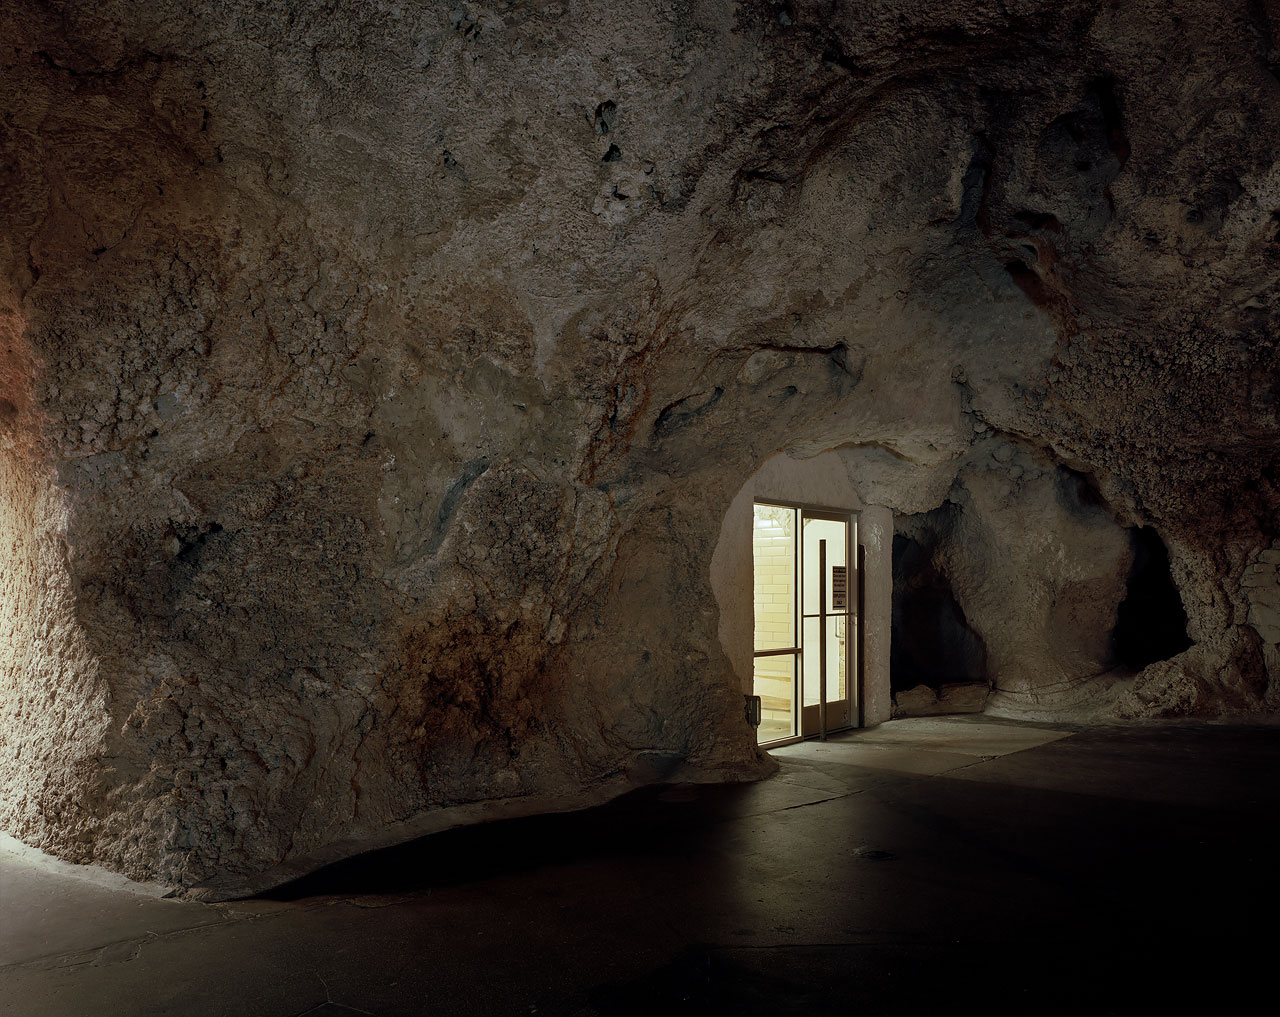 Austin Irving - SHOW CAVES - Felix Schoeller Photoaward